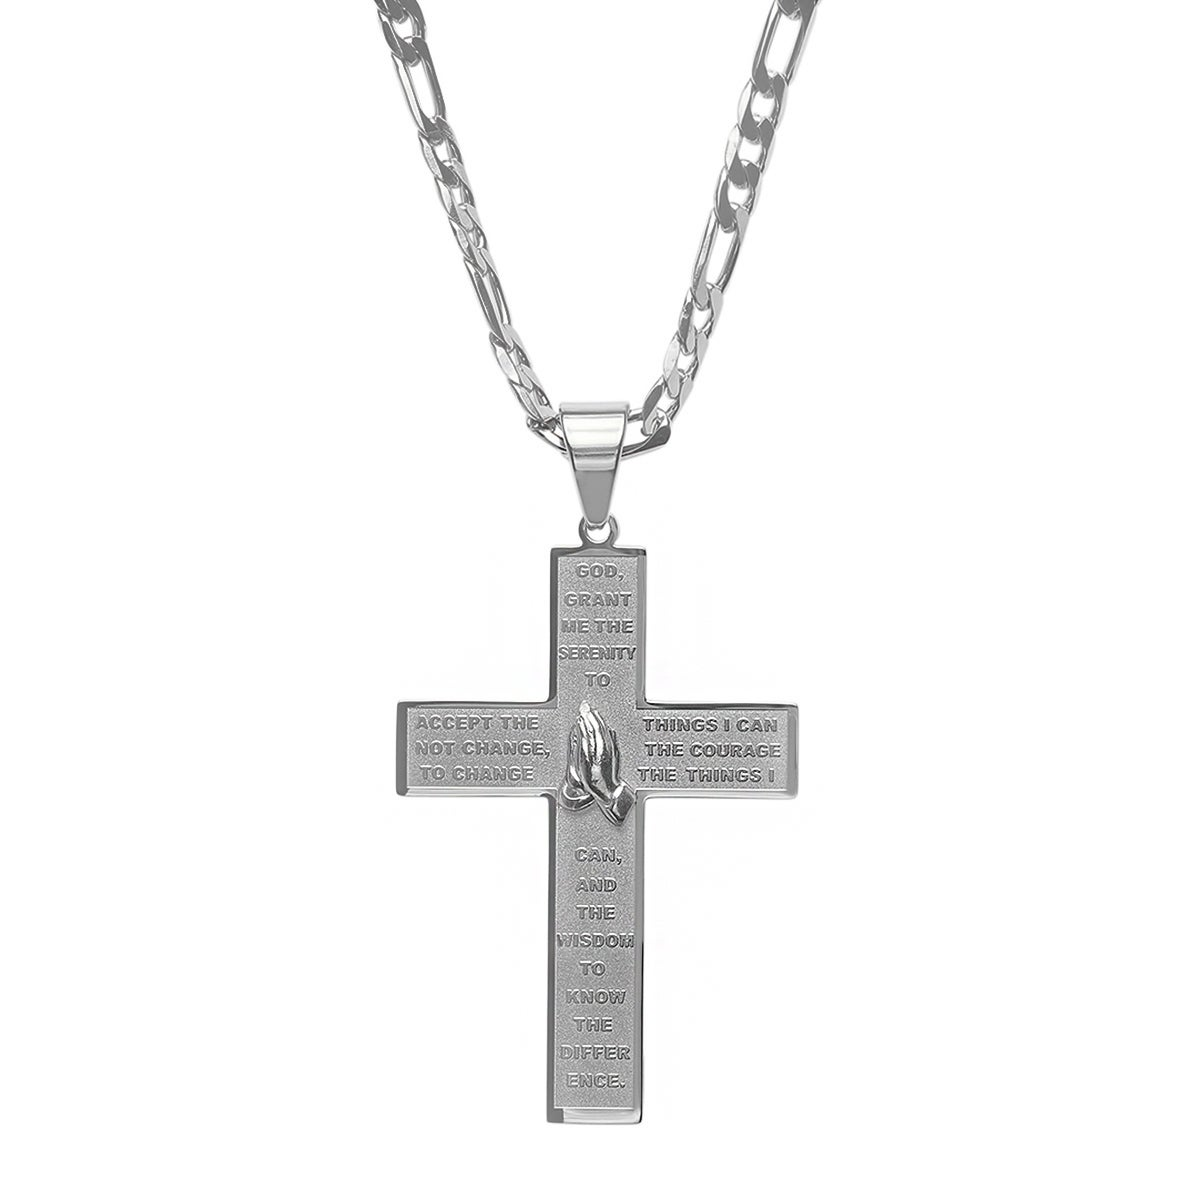 Shop steeltime mens stainless steel serenity prayer cross pendant shop steeltime mens stainless steel serenity prayer cross pendant on a figaro chain in 2 colors free shipping on orders over 45 overstock aloadofball Choice Image